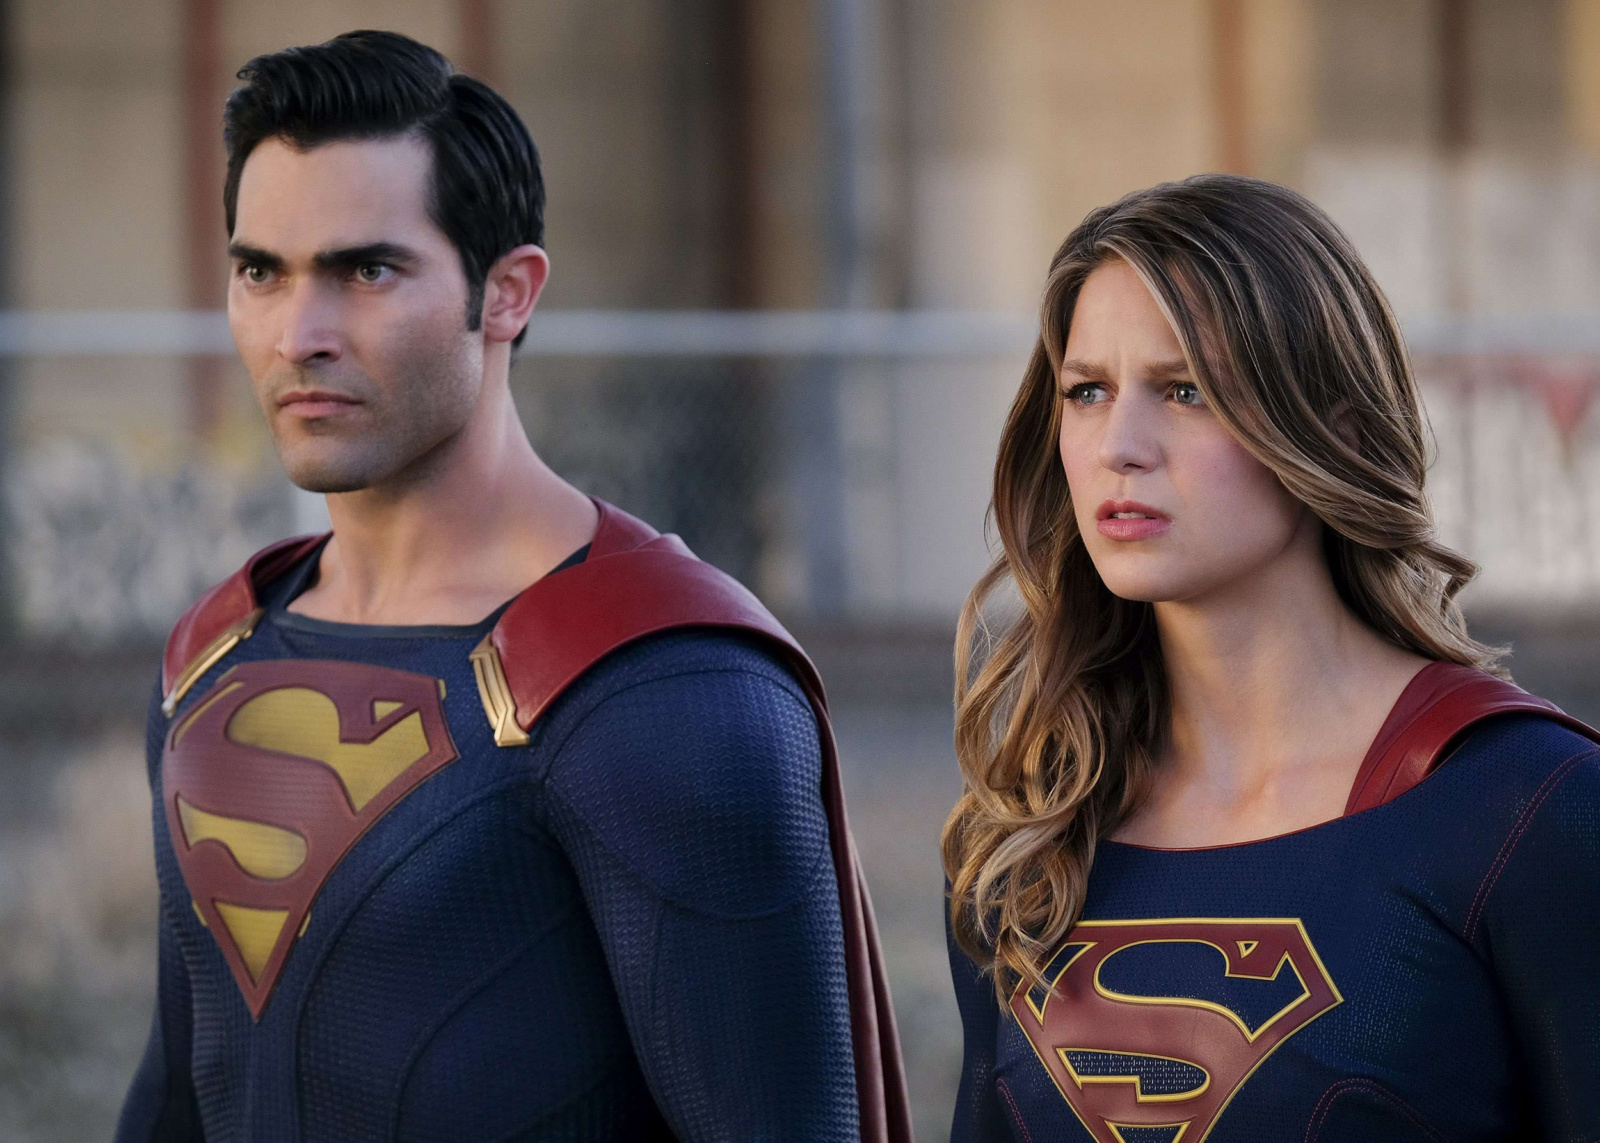 Supergirl: Season Two Off to Good Start - ASK Genre TV